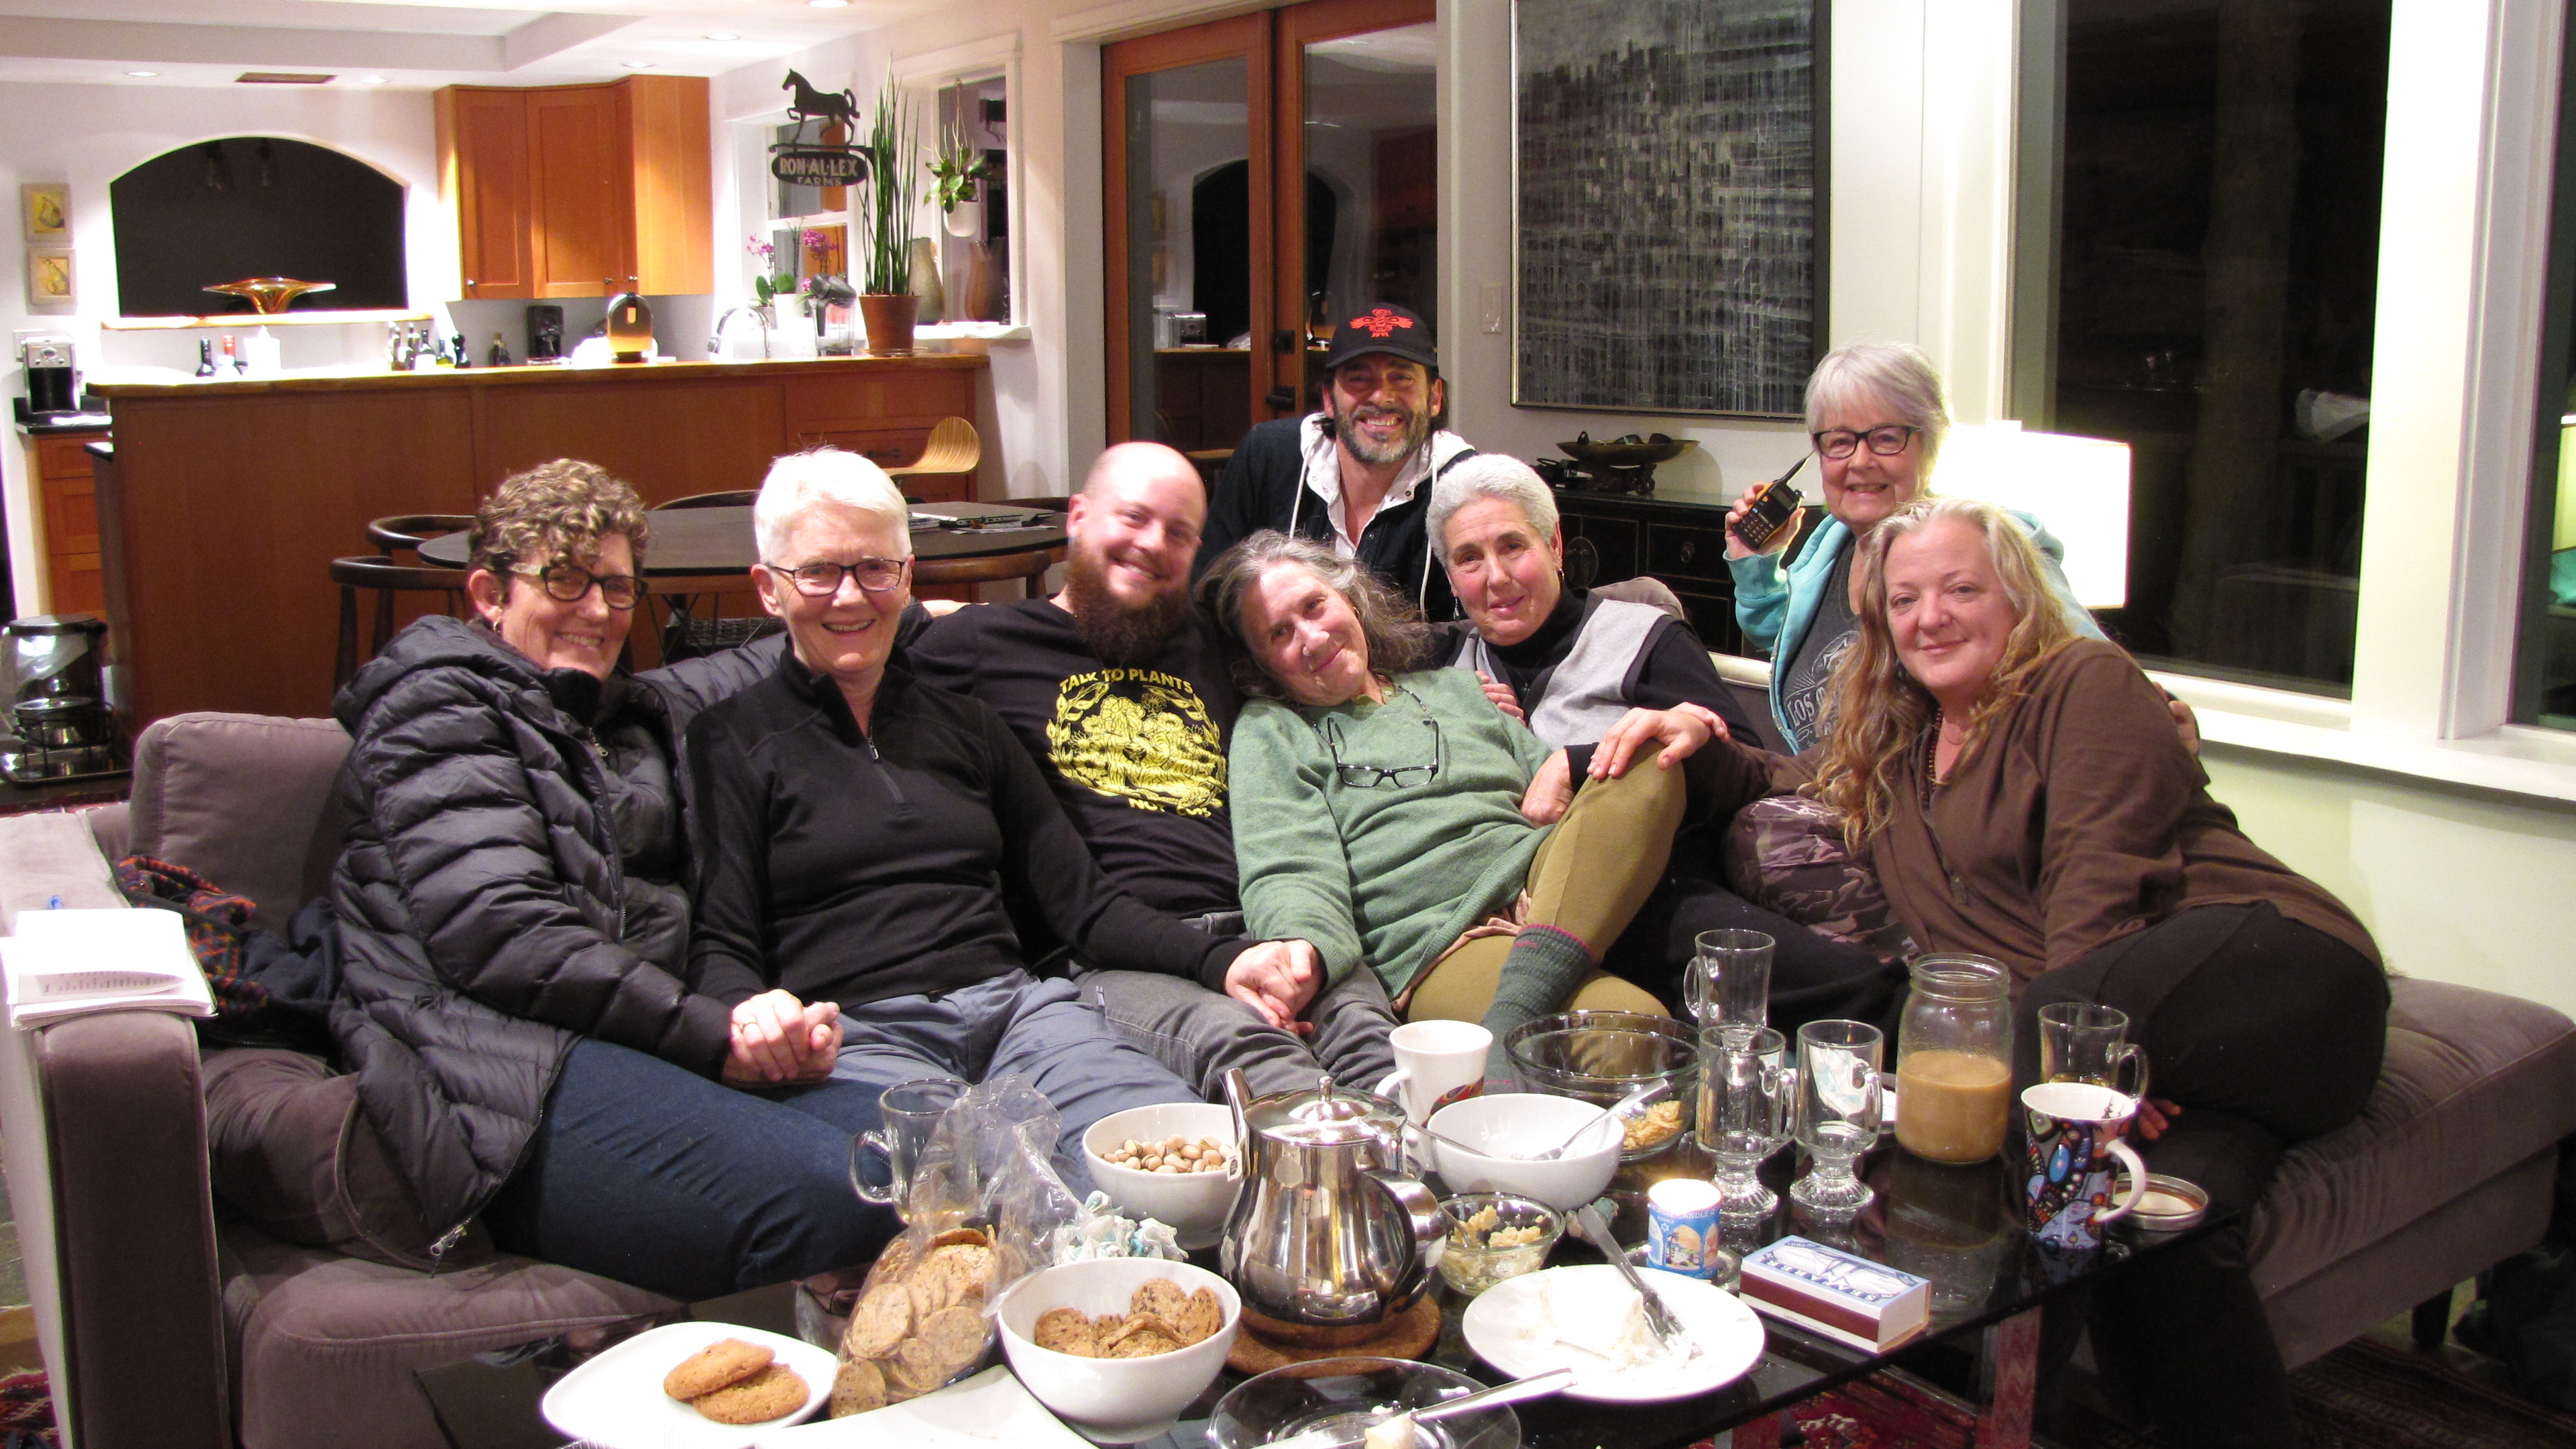 queer circle photo